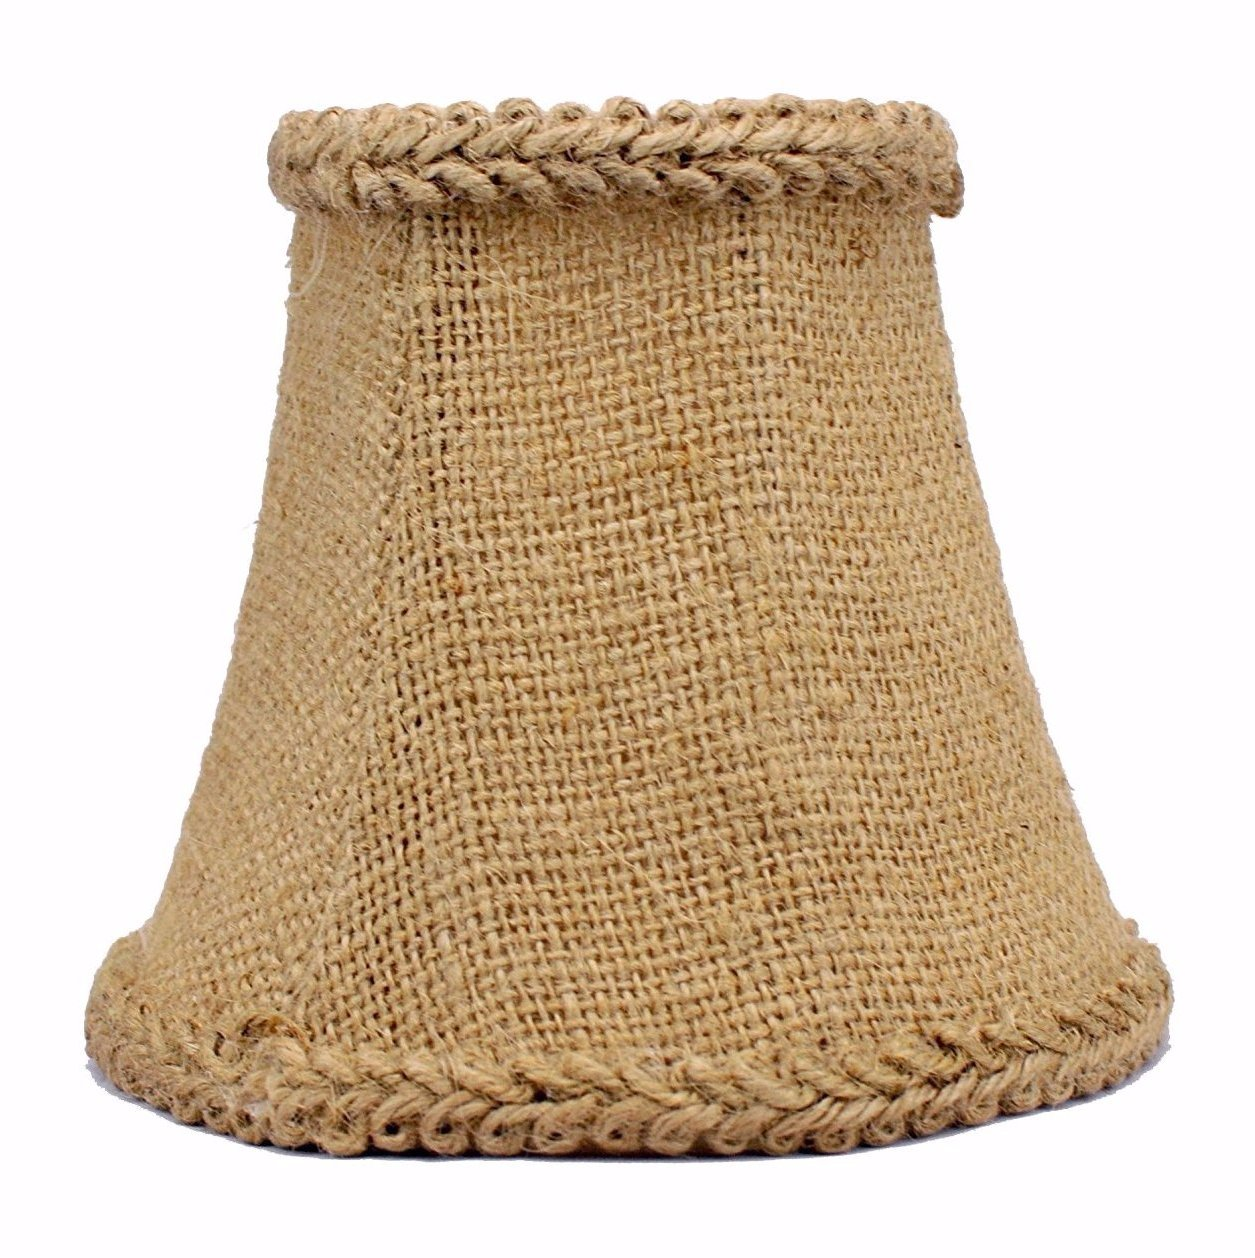 Burlap 5 inch chandelier mini lamp shade with braided trim urbanest burlap 5 inch chandelier mini lamp shade with braided trim aloadofball Choice Image